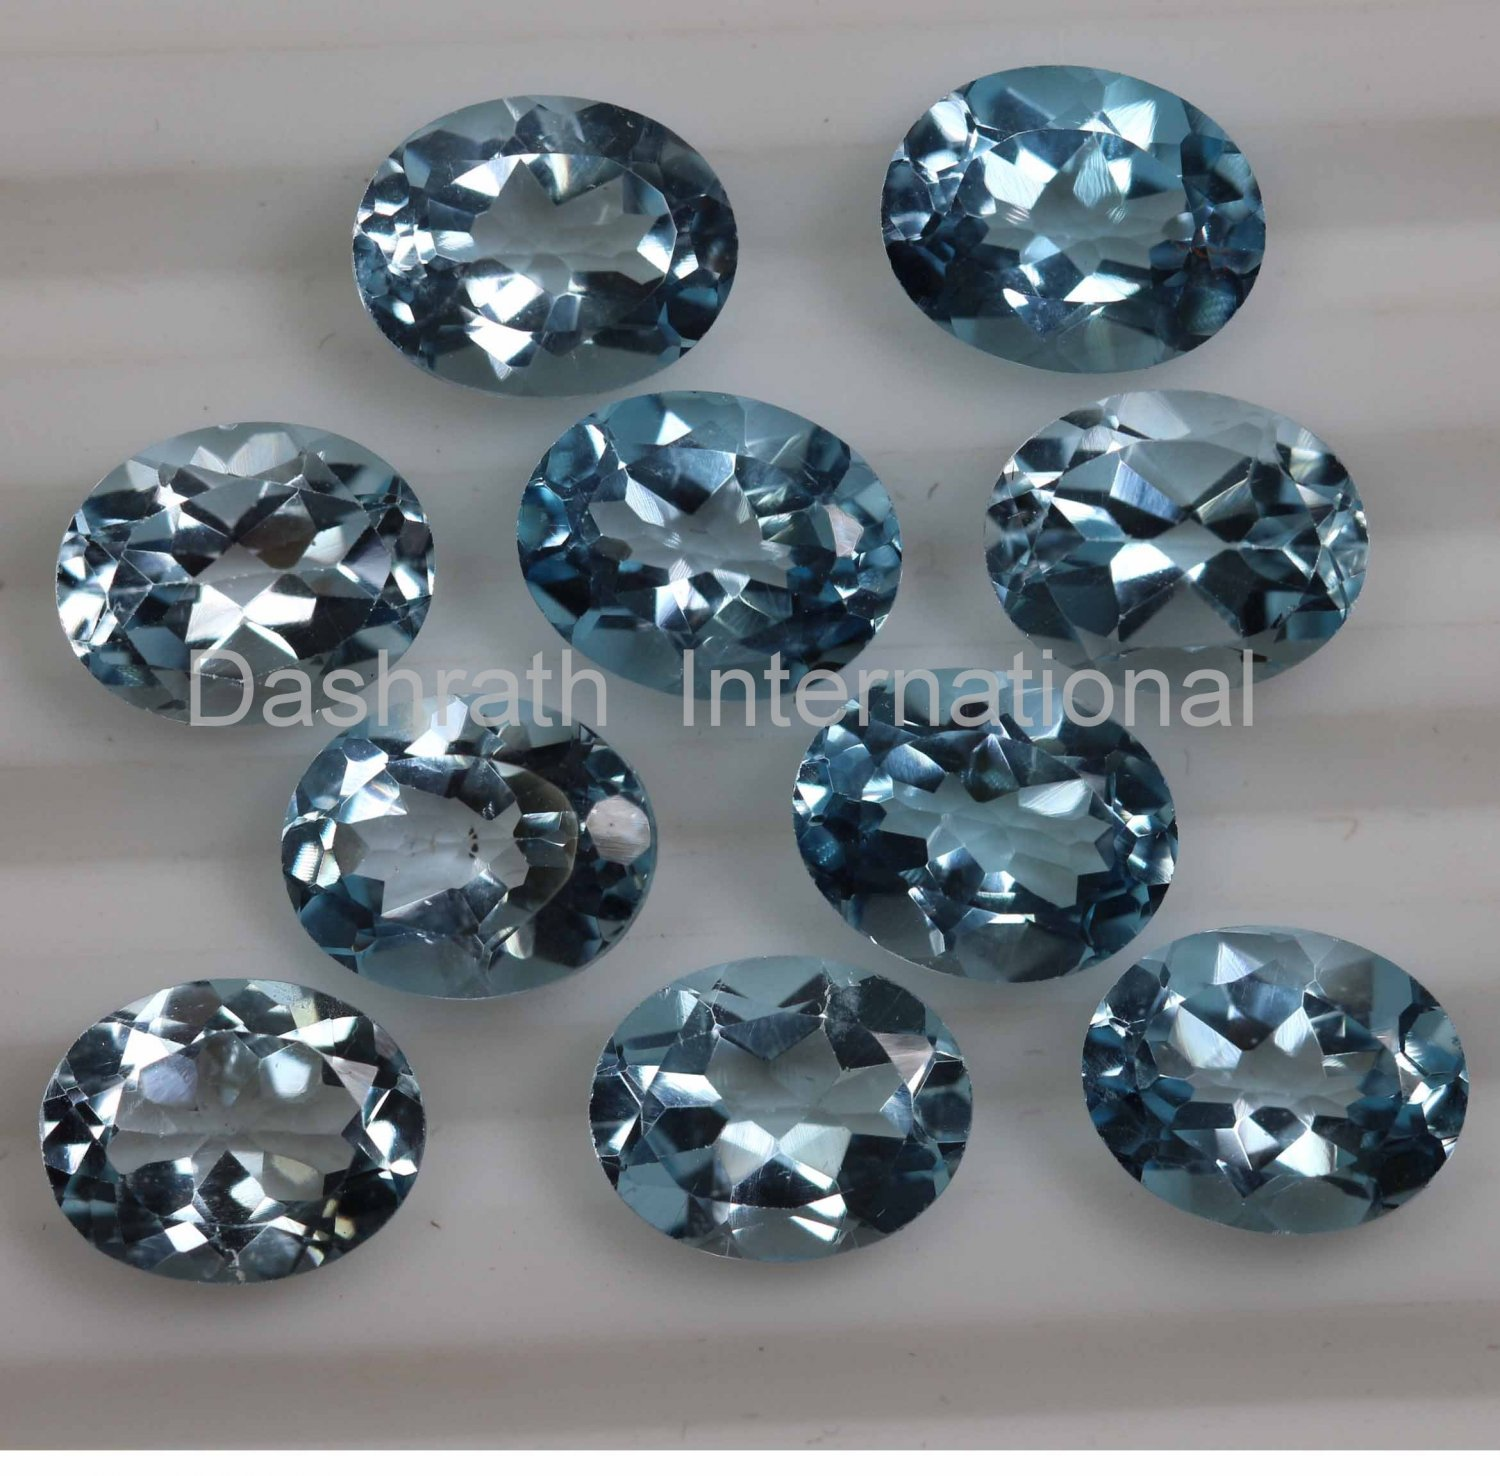 8x6mm  Natural Sky Blue Topaz Faceted Cut Oval  50 Pieces Lot  Top Quality Loose Gemstone